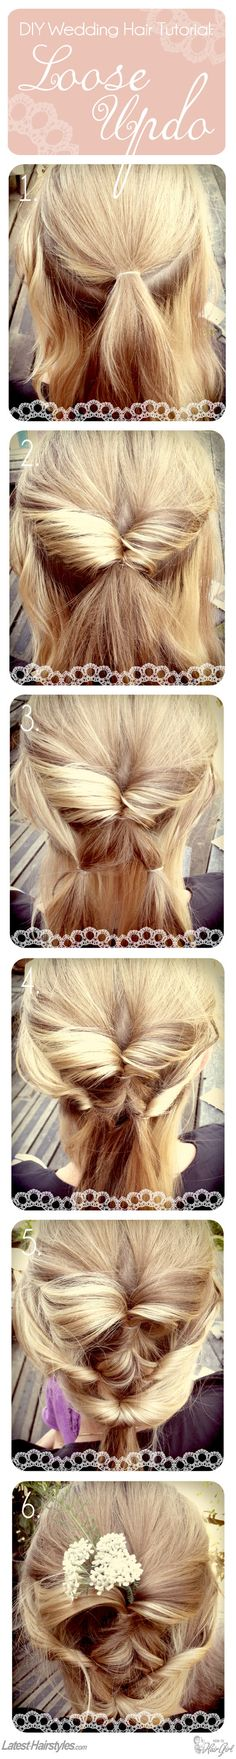 Hey ladies!It's summer time....so leave your styling tools for this season and try on different braids and updos.I have stumbled upon these beautiful hairstyles recently... It's going to be perfect....